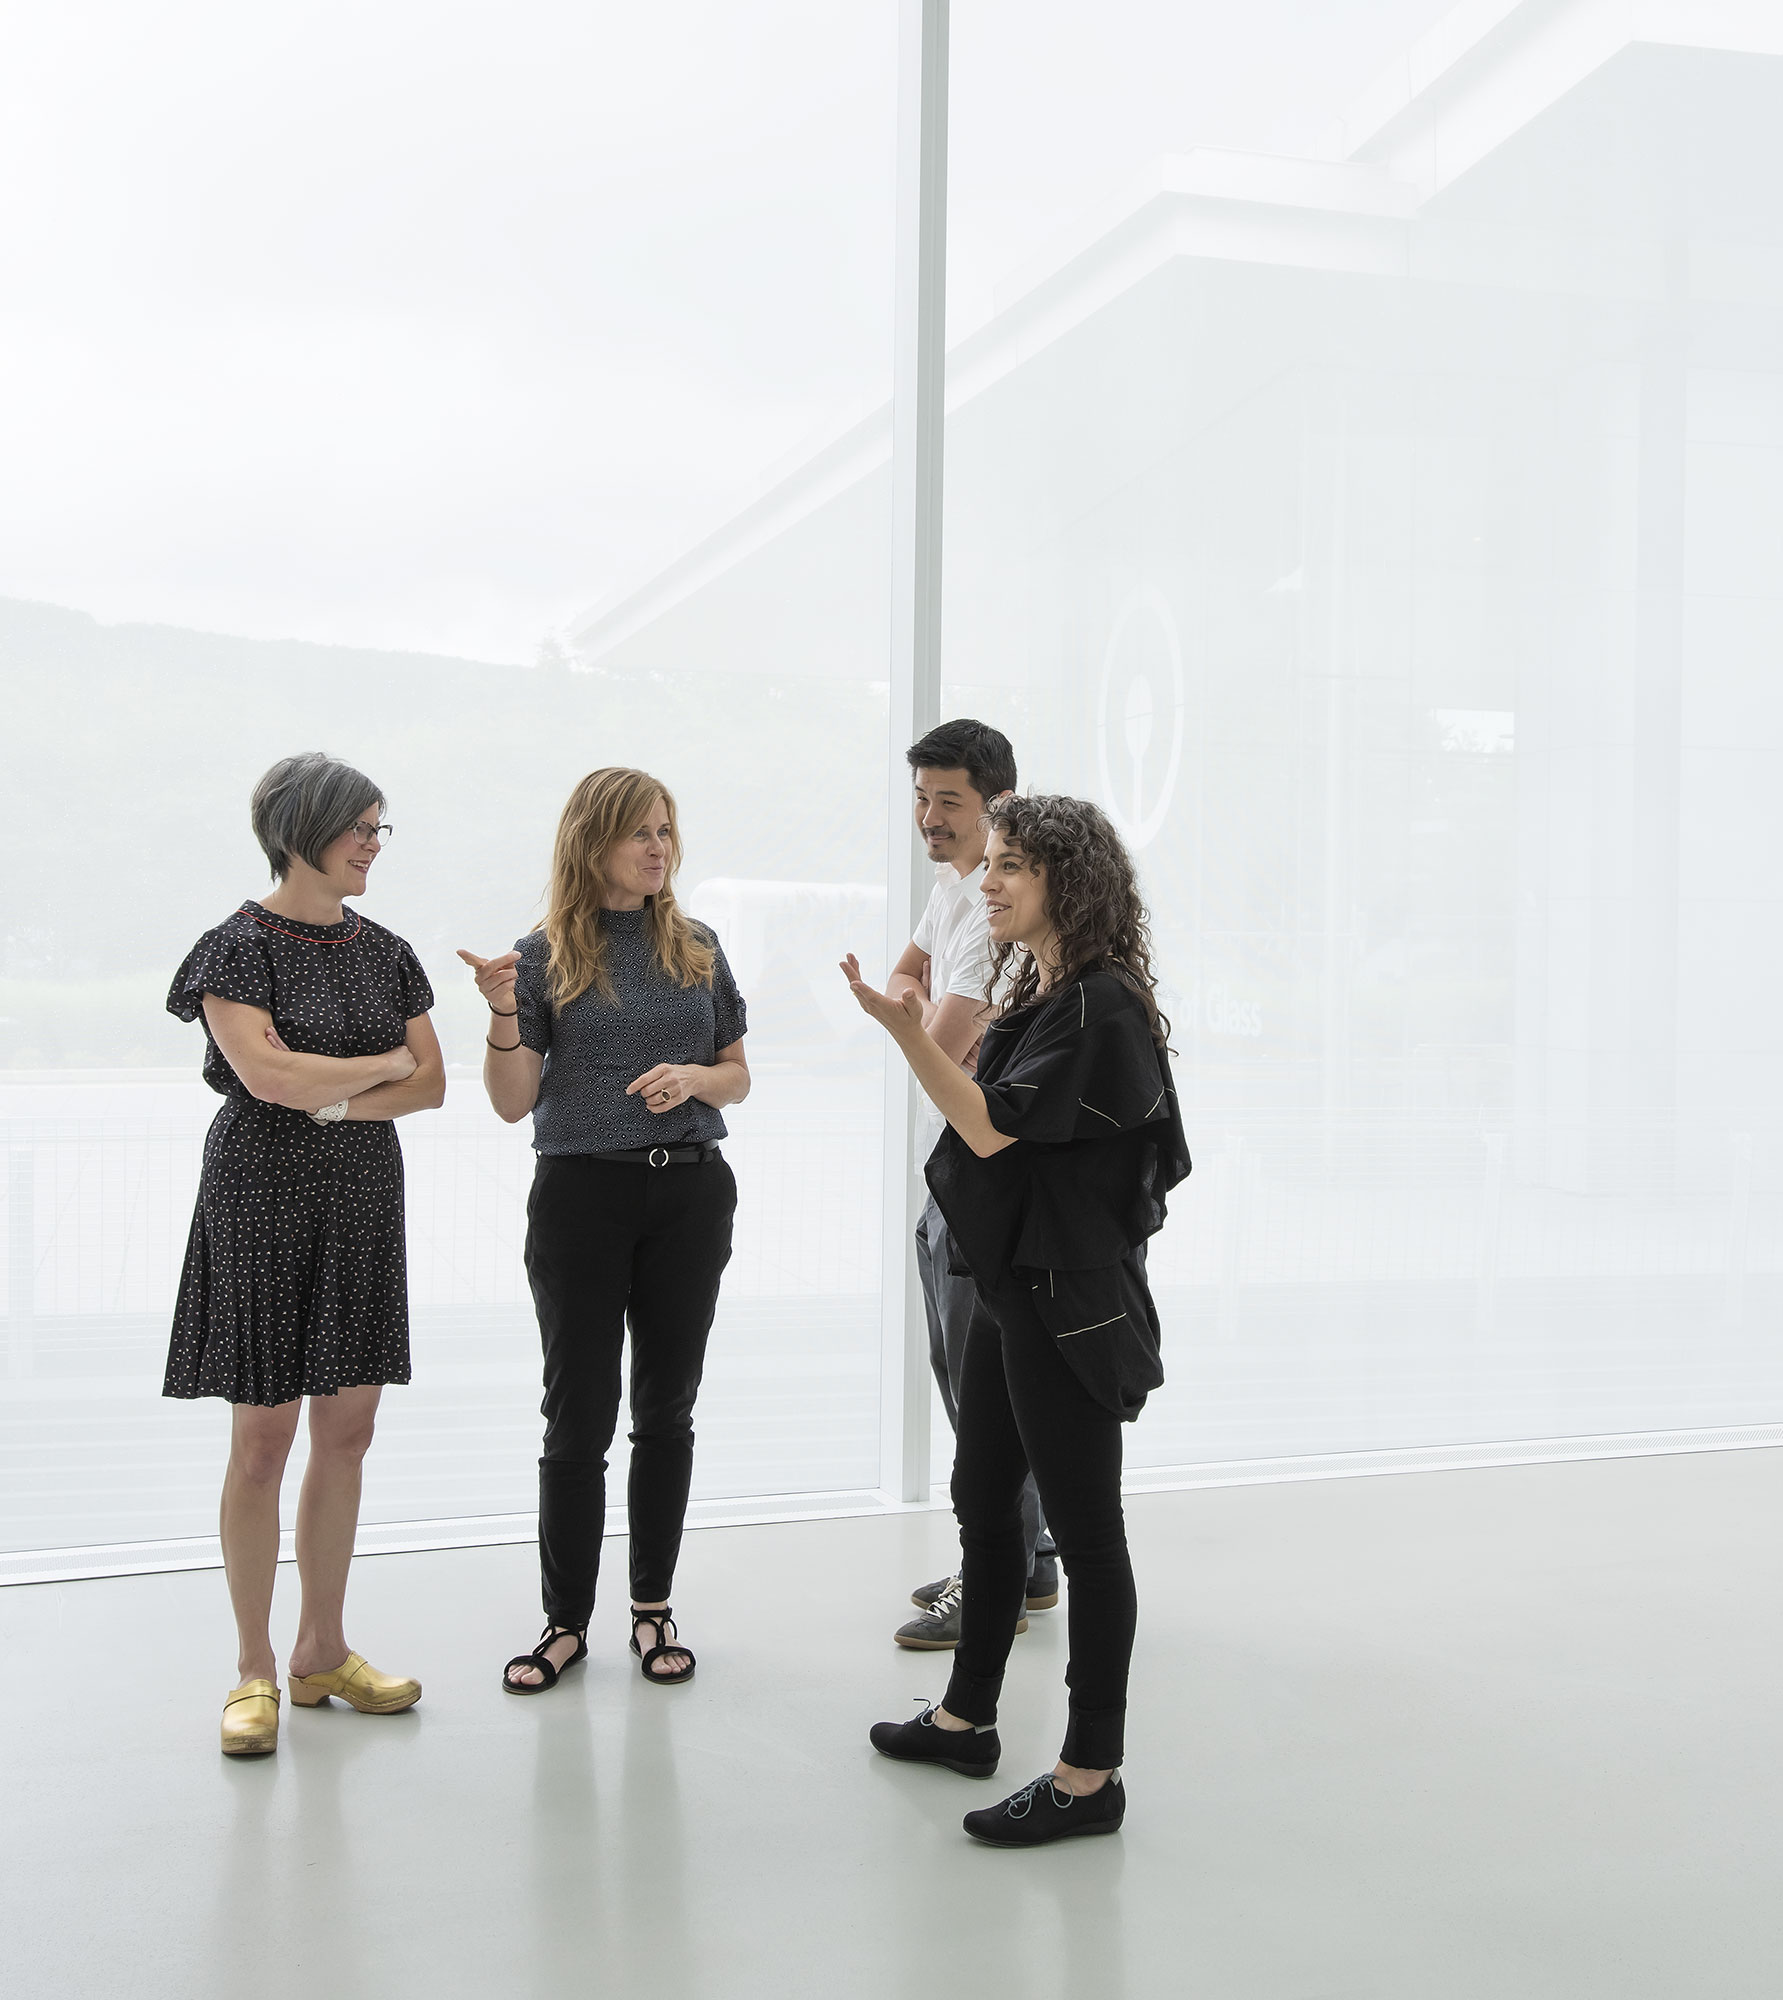 Photo of 3 women and one man standing and talking in brightly lit space